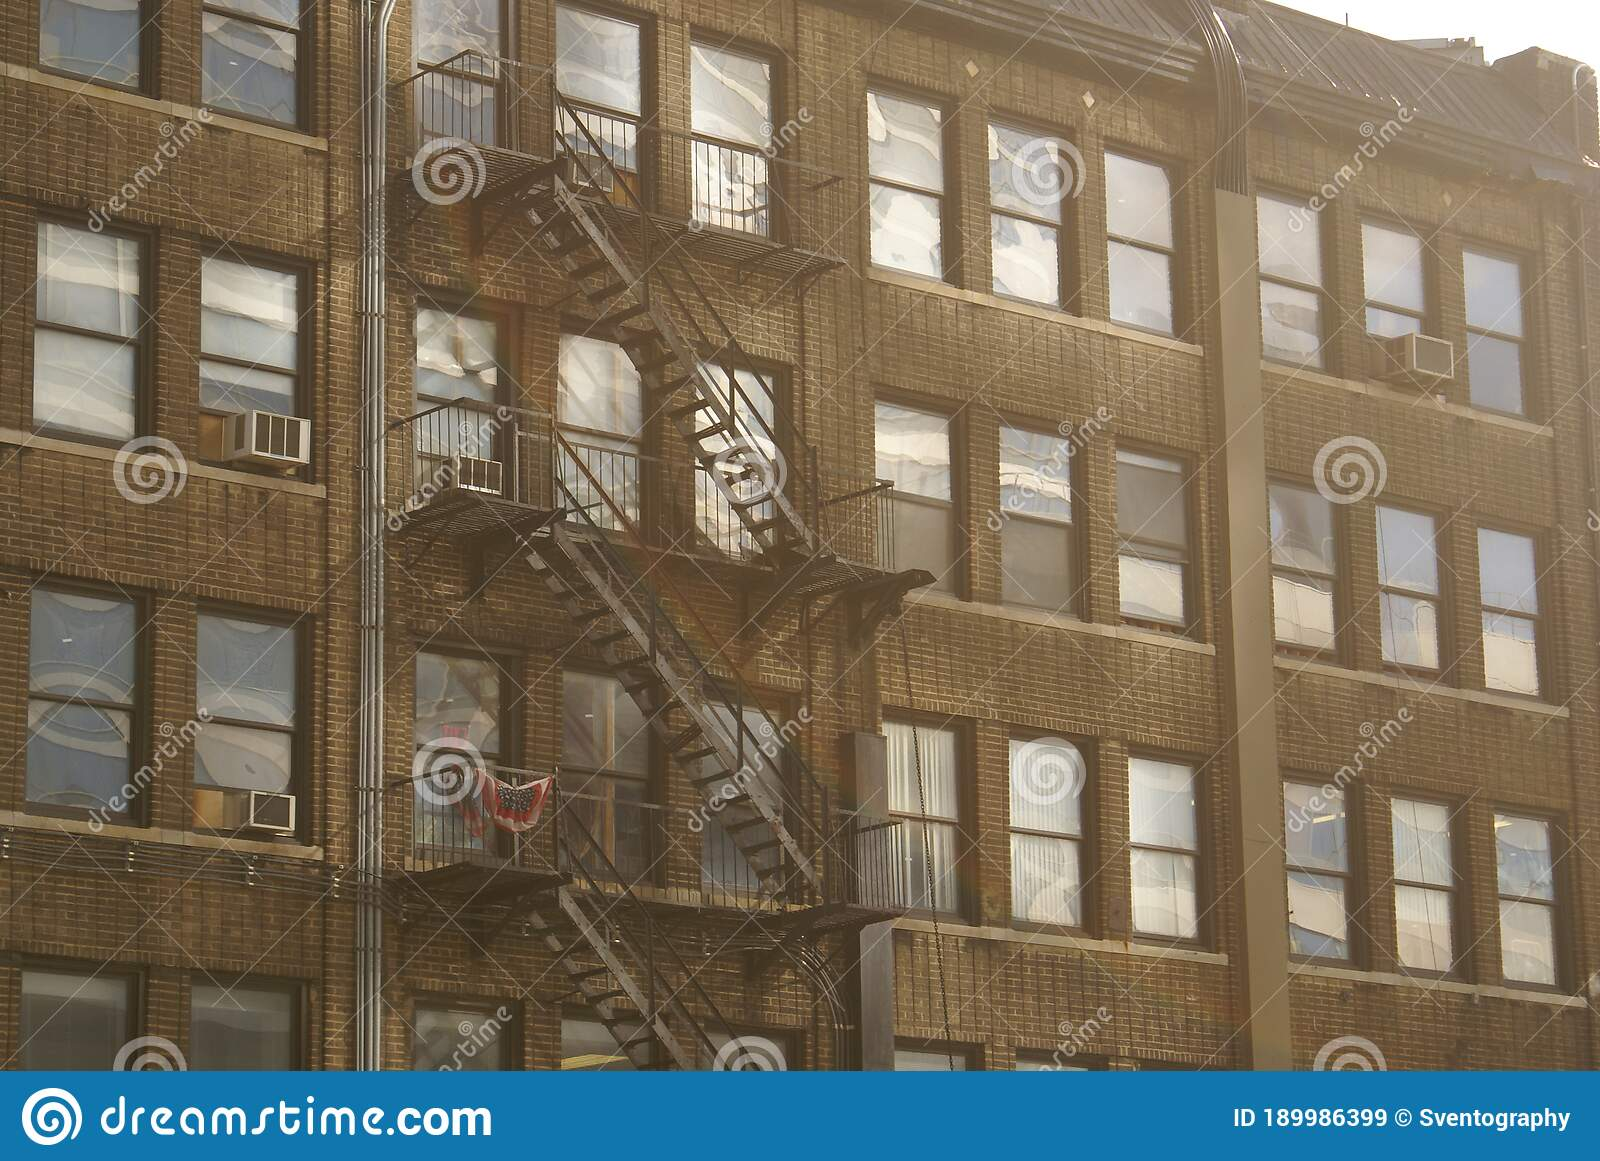 Aesthetic Looking Windows Of A Nyc Apartment Stock Image Image Of Cast Apartment 189986399